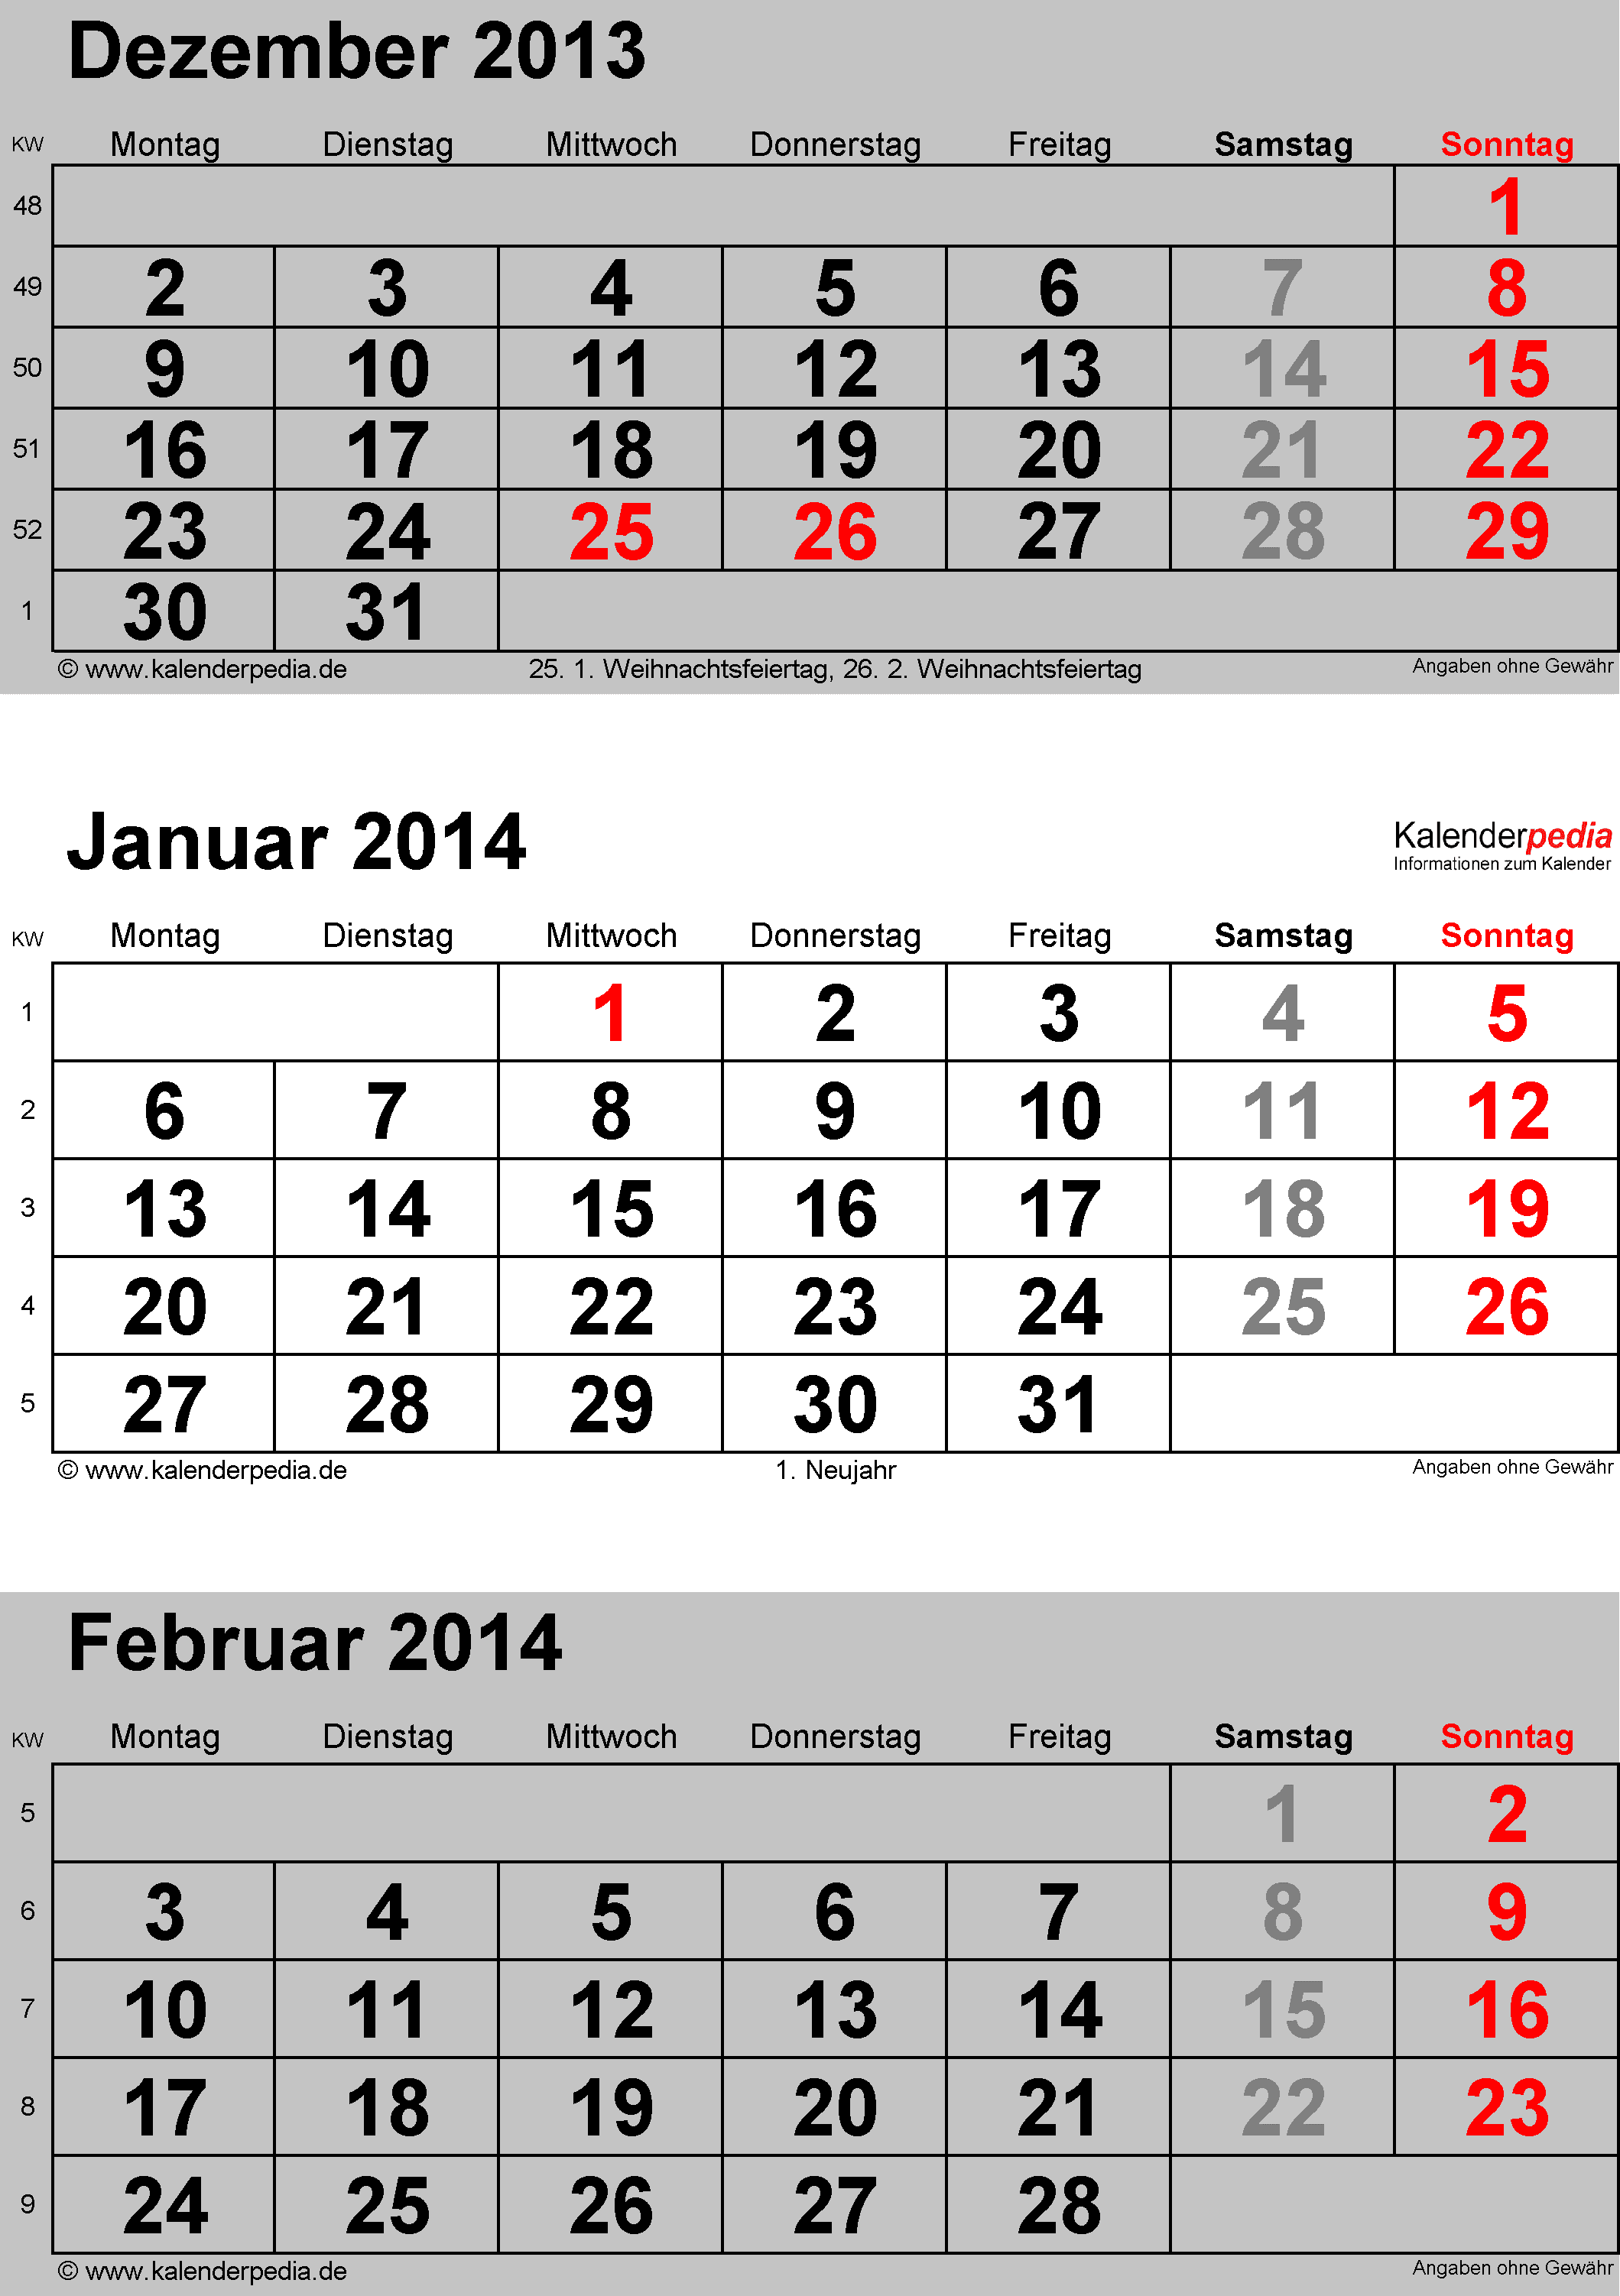 kalender januar 2014 als excel vorlagen. Black Bedroom Furniture Sets. Home Design Ideas